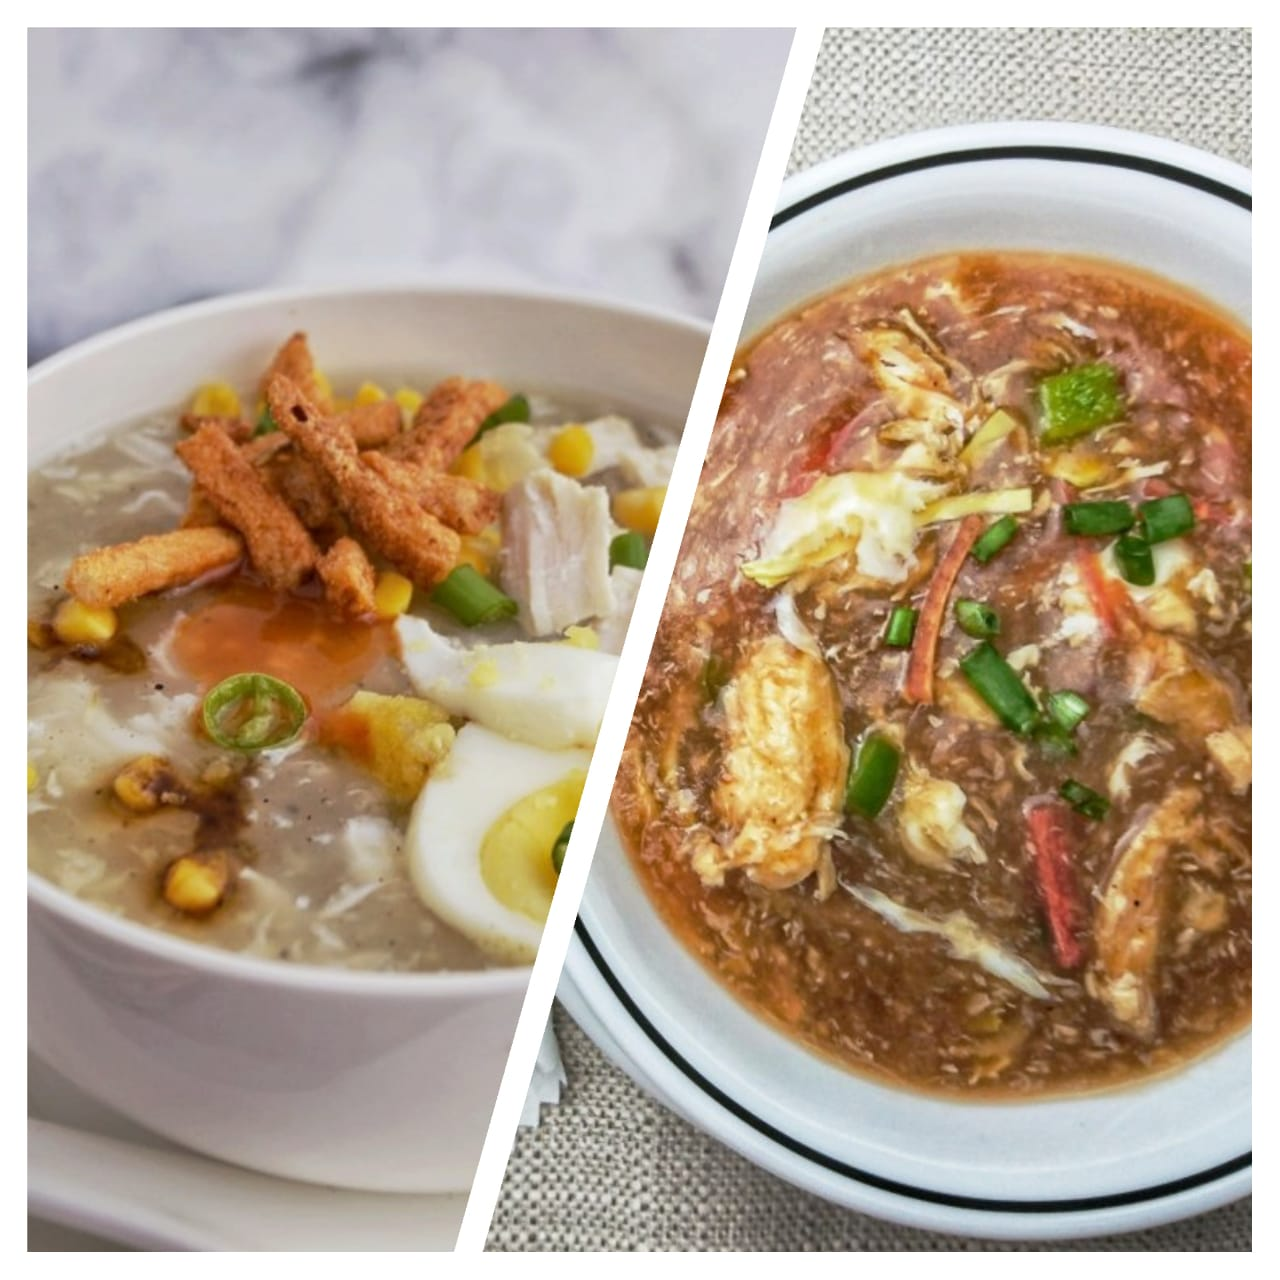 Tale of Two Soups